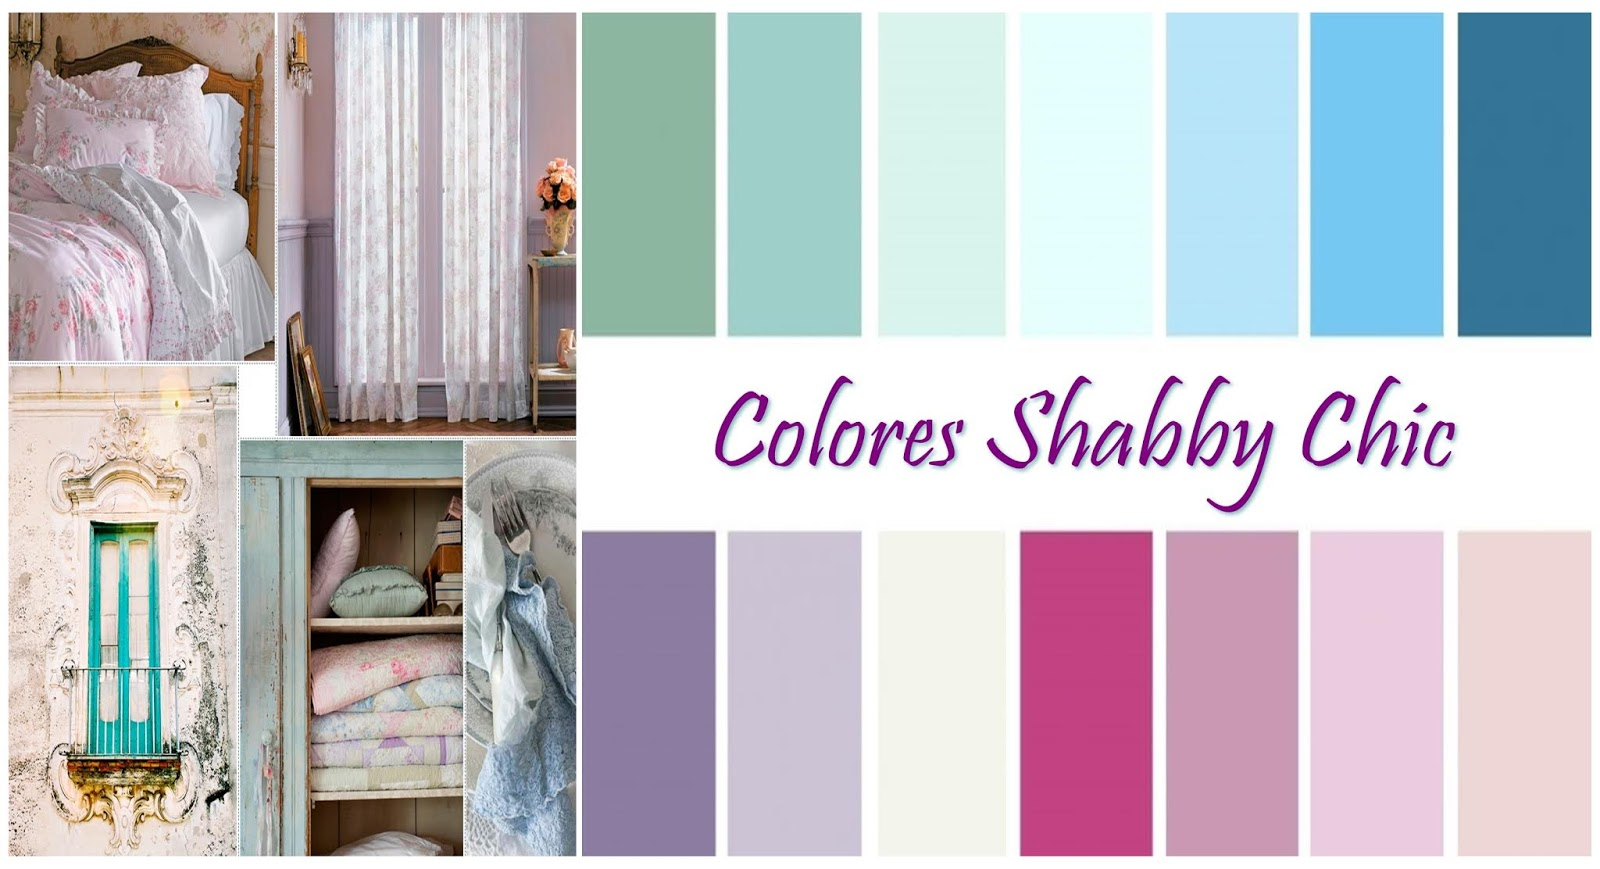 Shabby chic decor - what colors does it use?